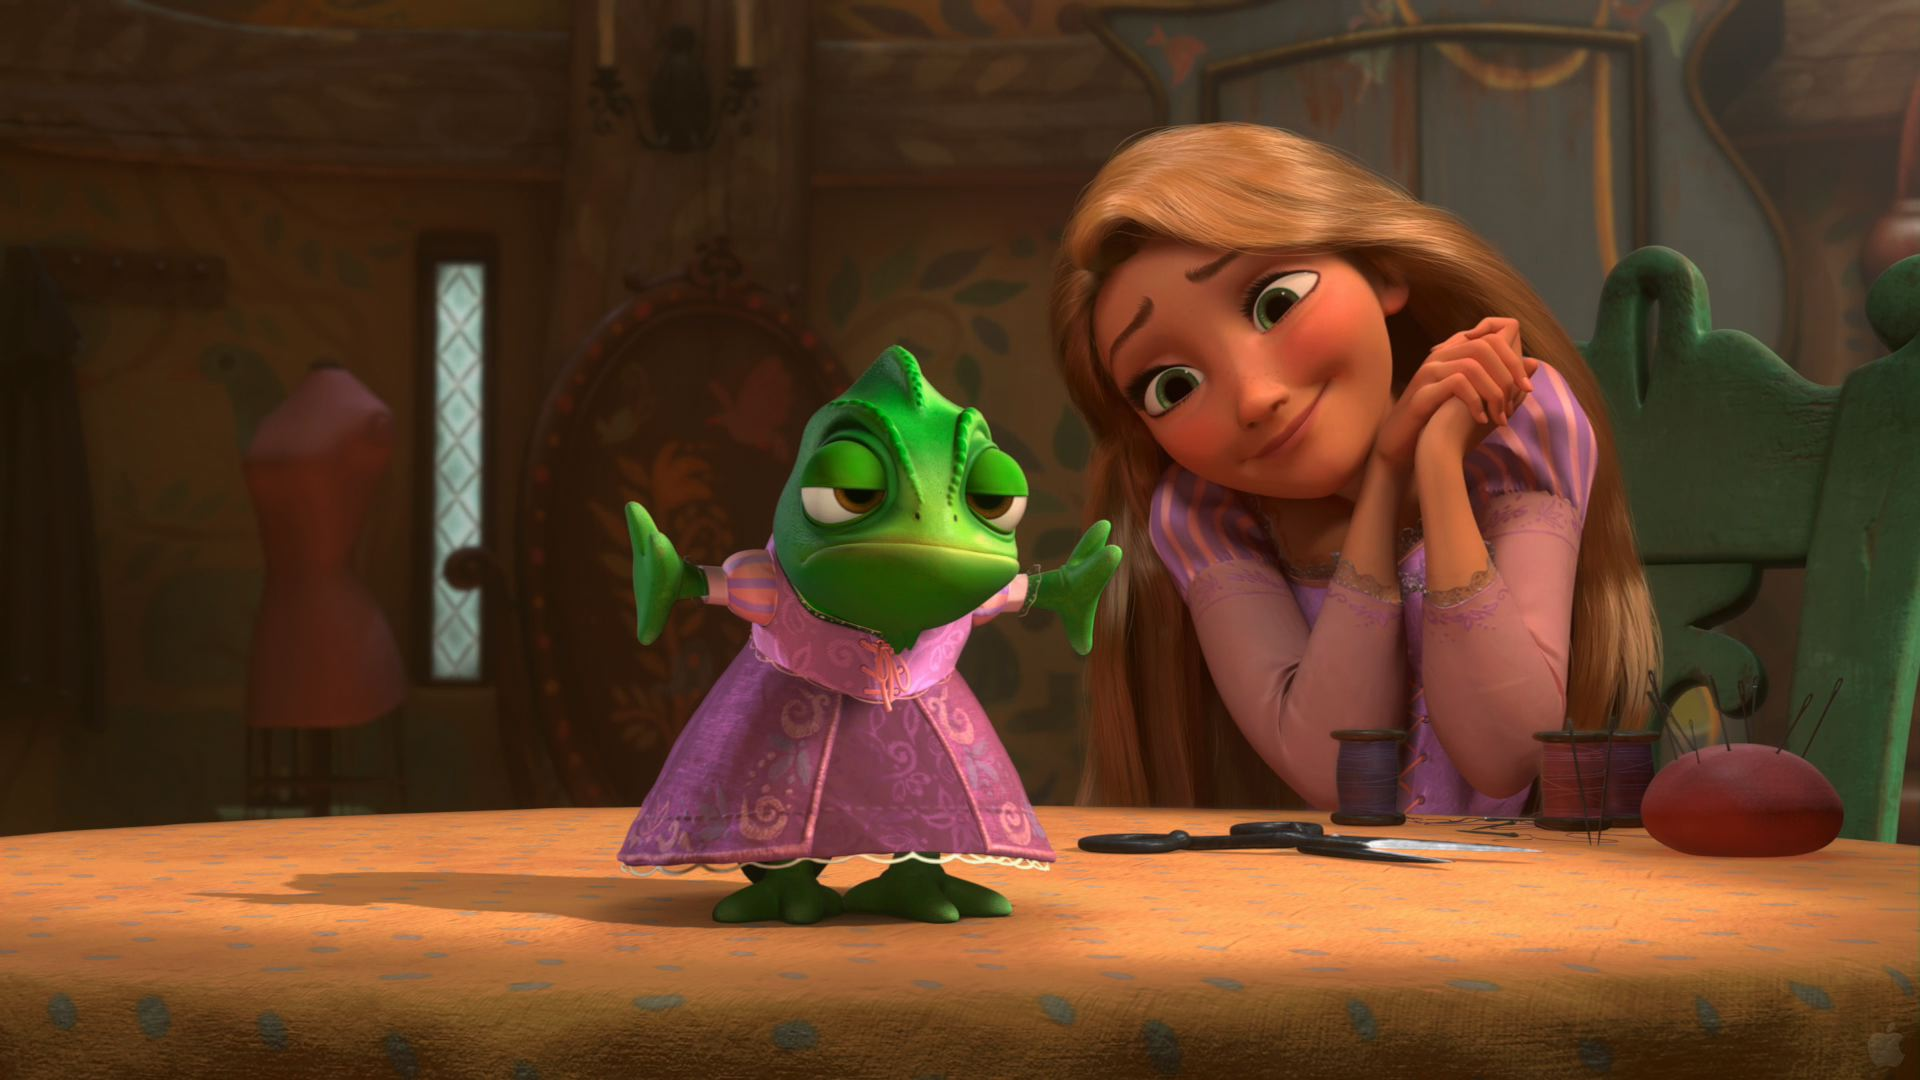 wallpaper.wiki-Free-Download-Disney-Tangled-Wallpaper-PIC-WPD008786